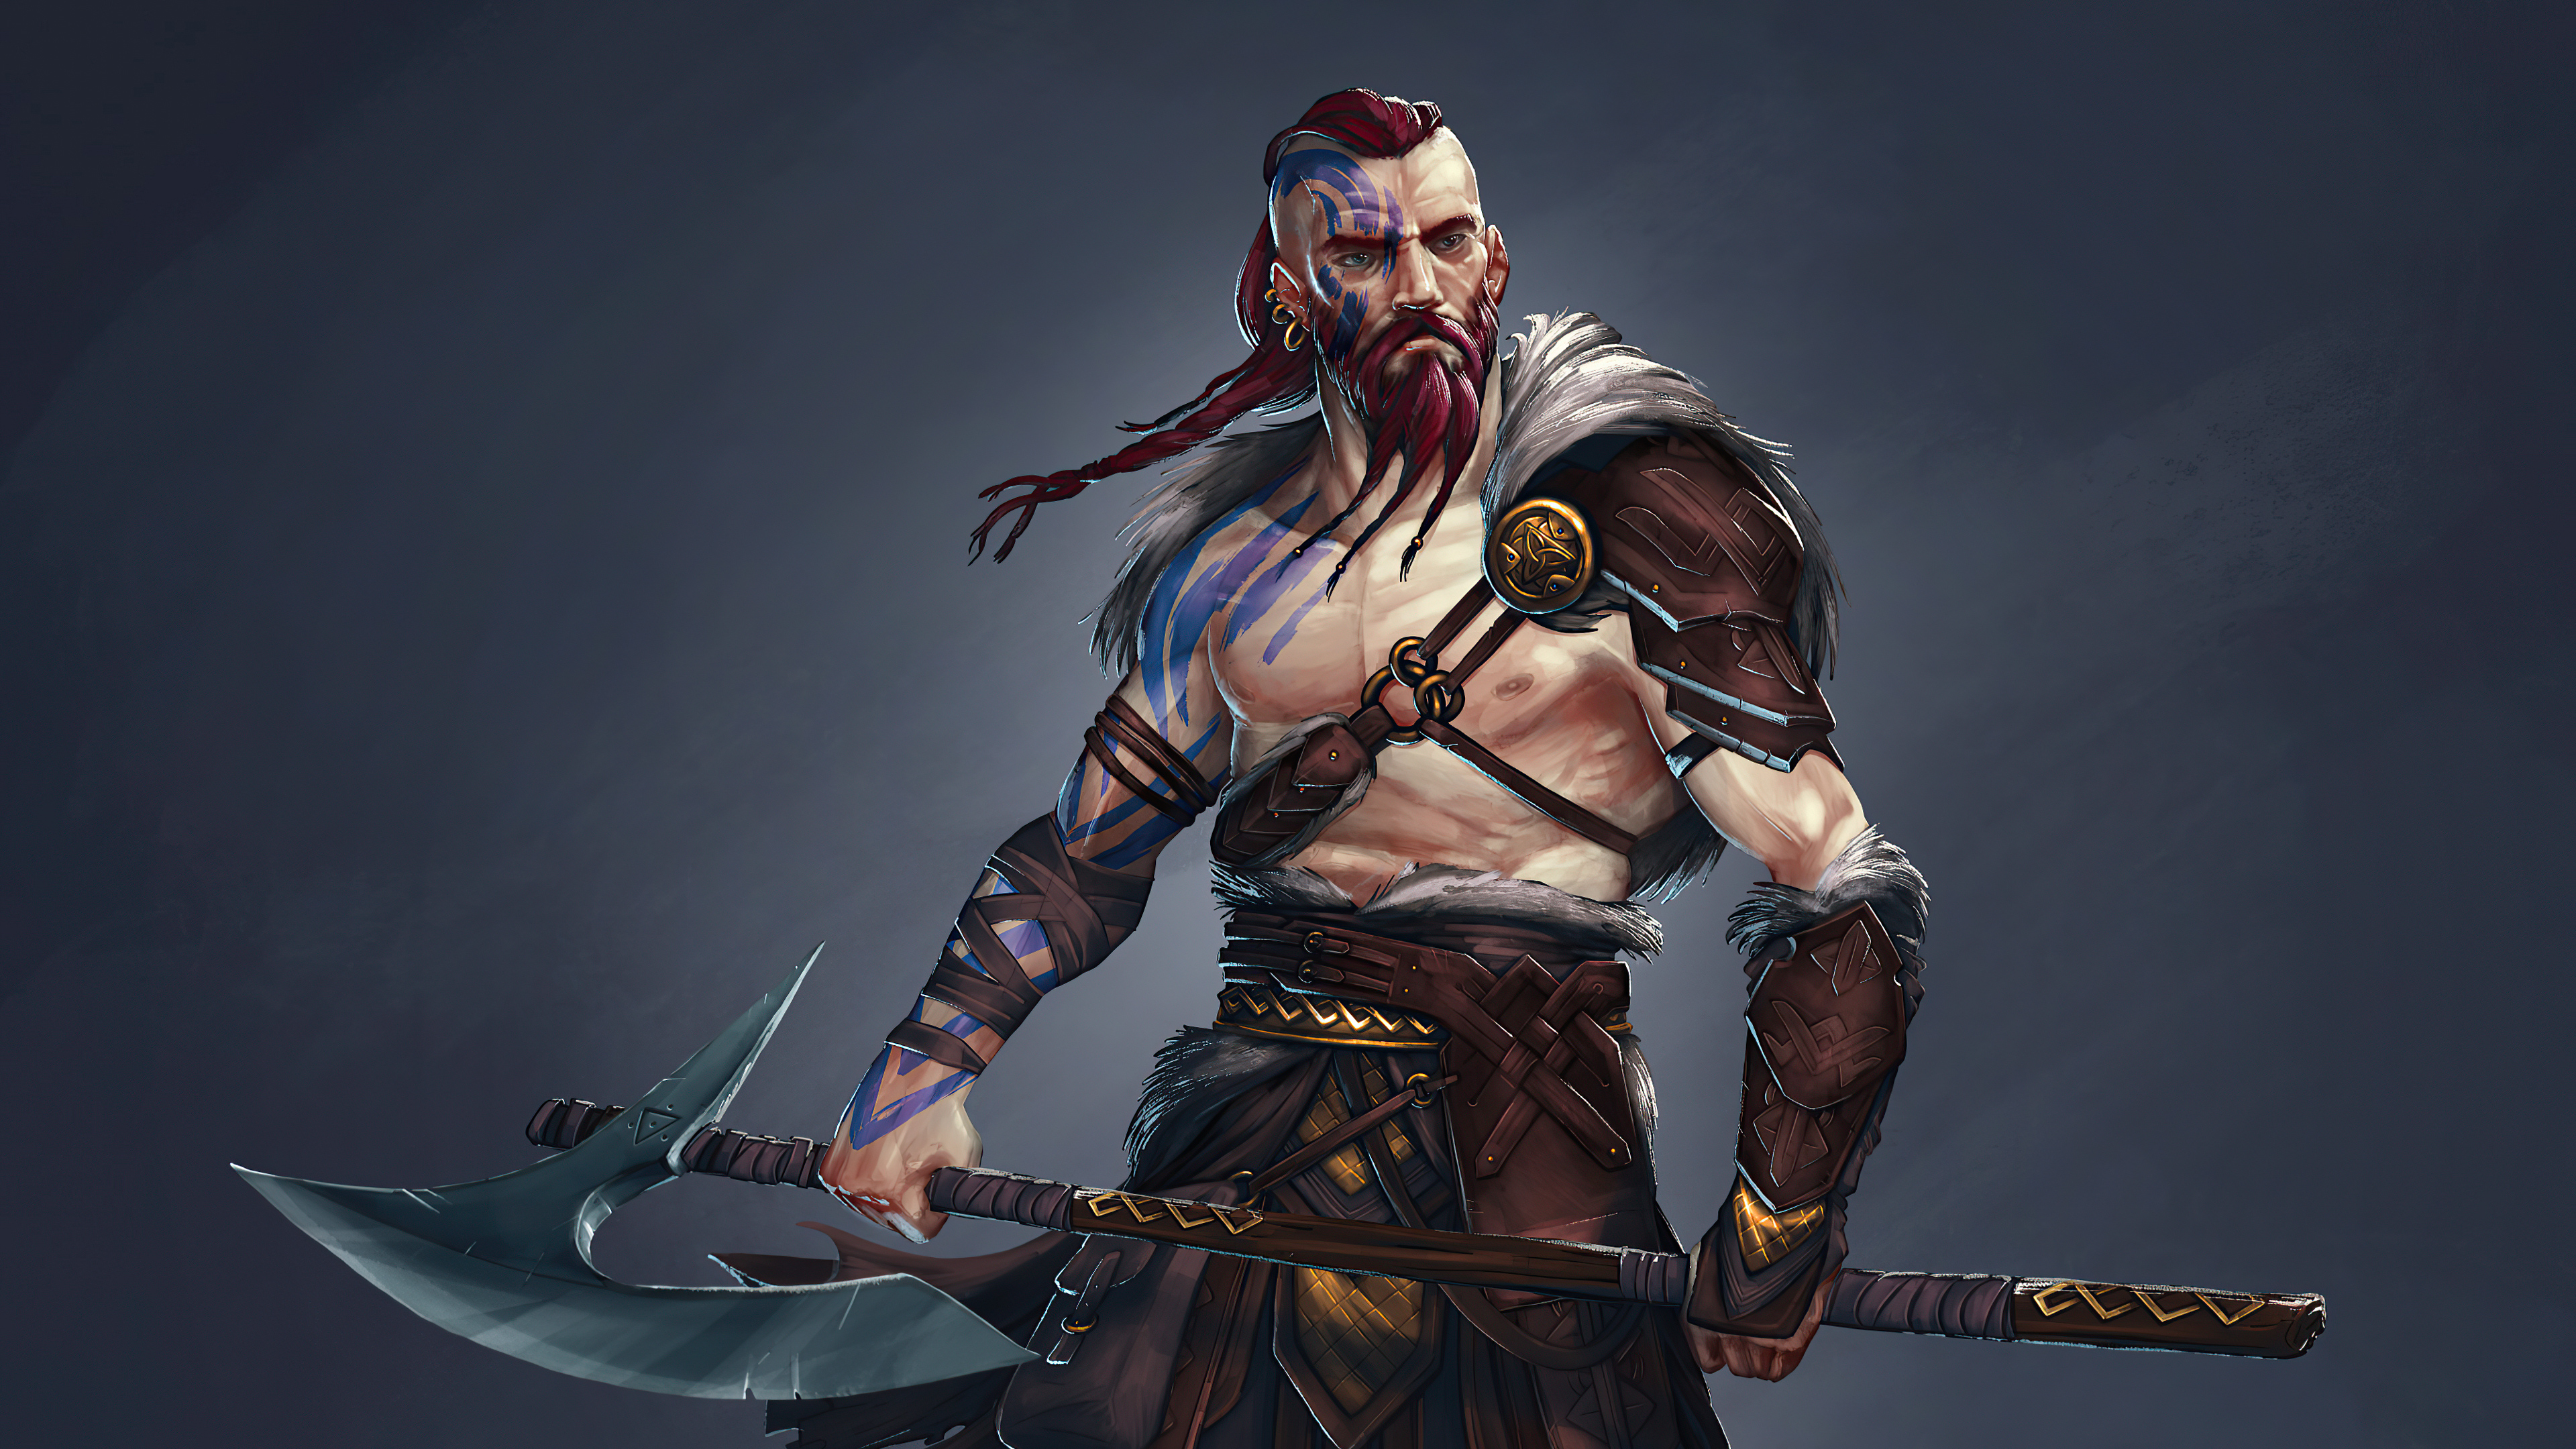 Viking Warrior 4k Hd Artist 4k Wallpapers Images Backgrounds Photos And Pictures